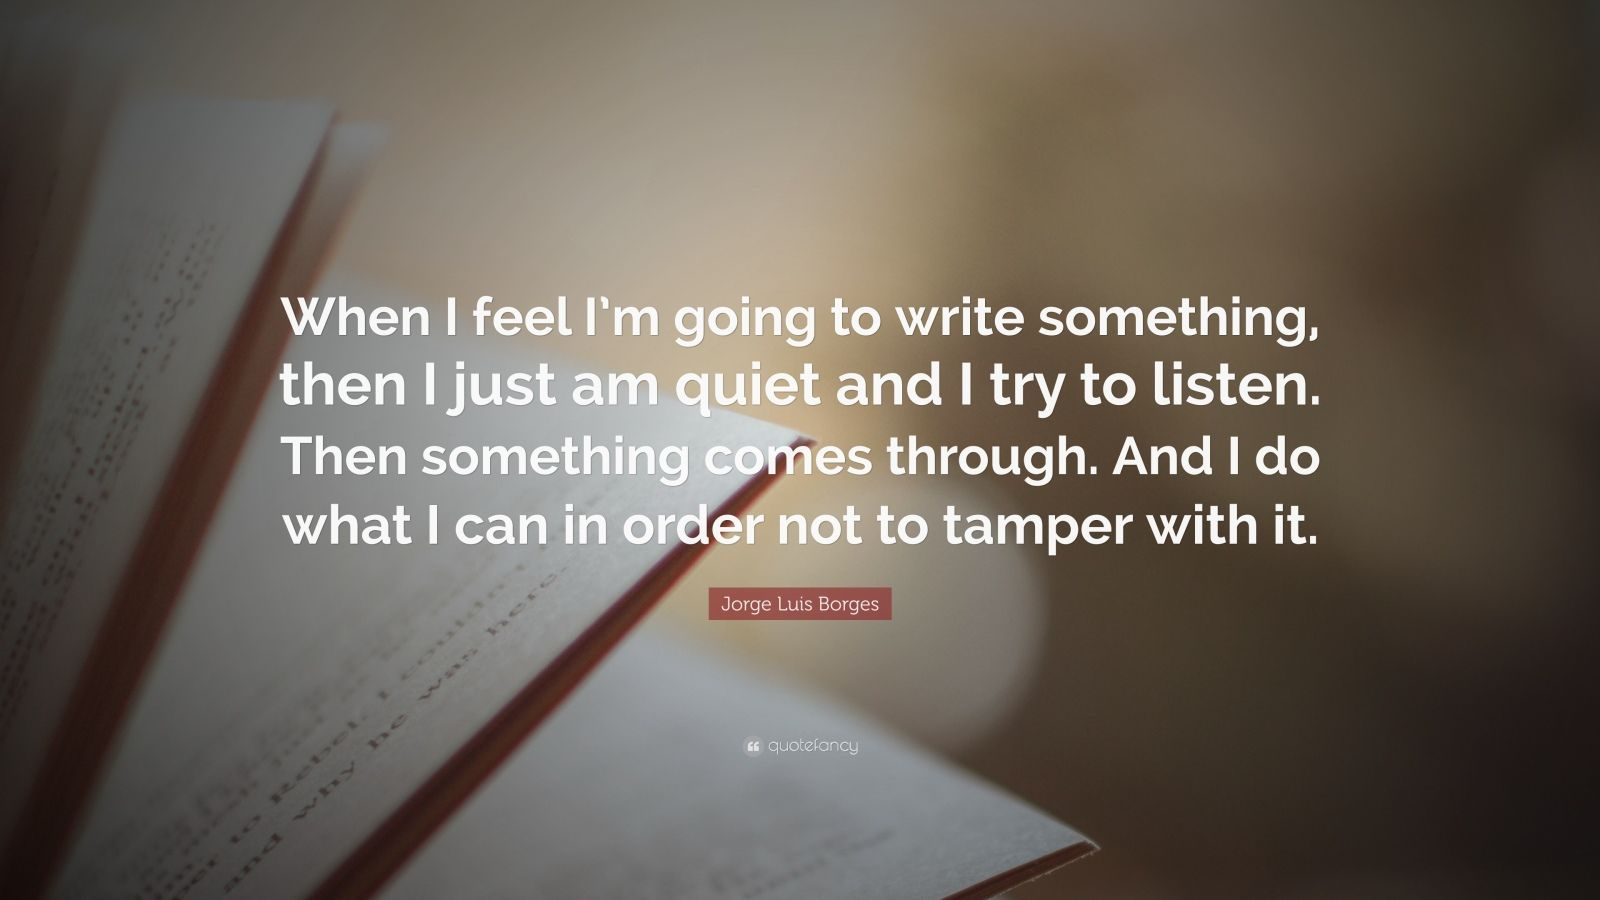 "Jorge Luis Borges Quote: ""When I feel I'm going to write something, then I just am quiet and I try to listen. Then something comes through. And I do what I can in order not to tamper with it."""